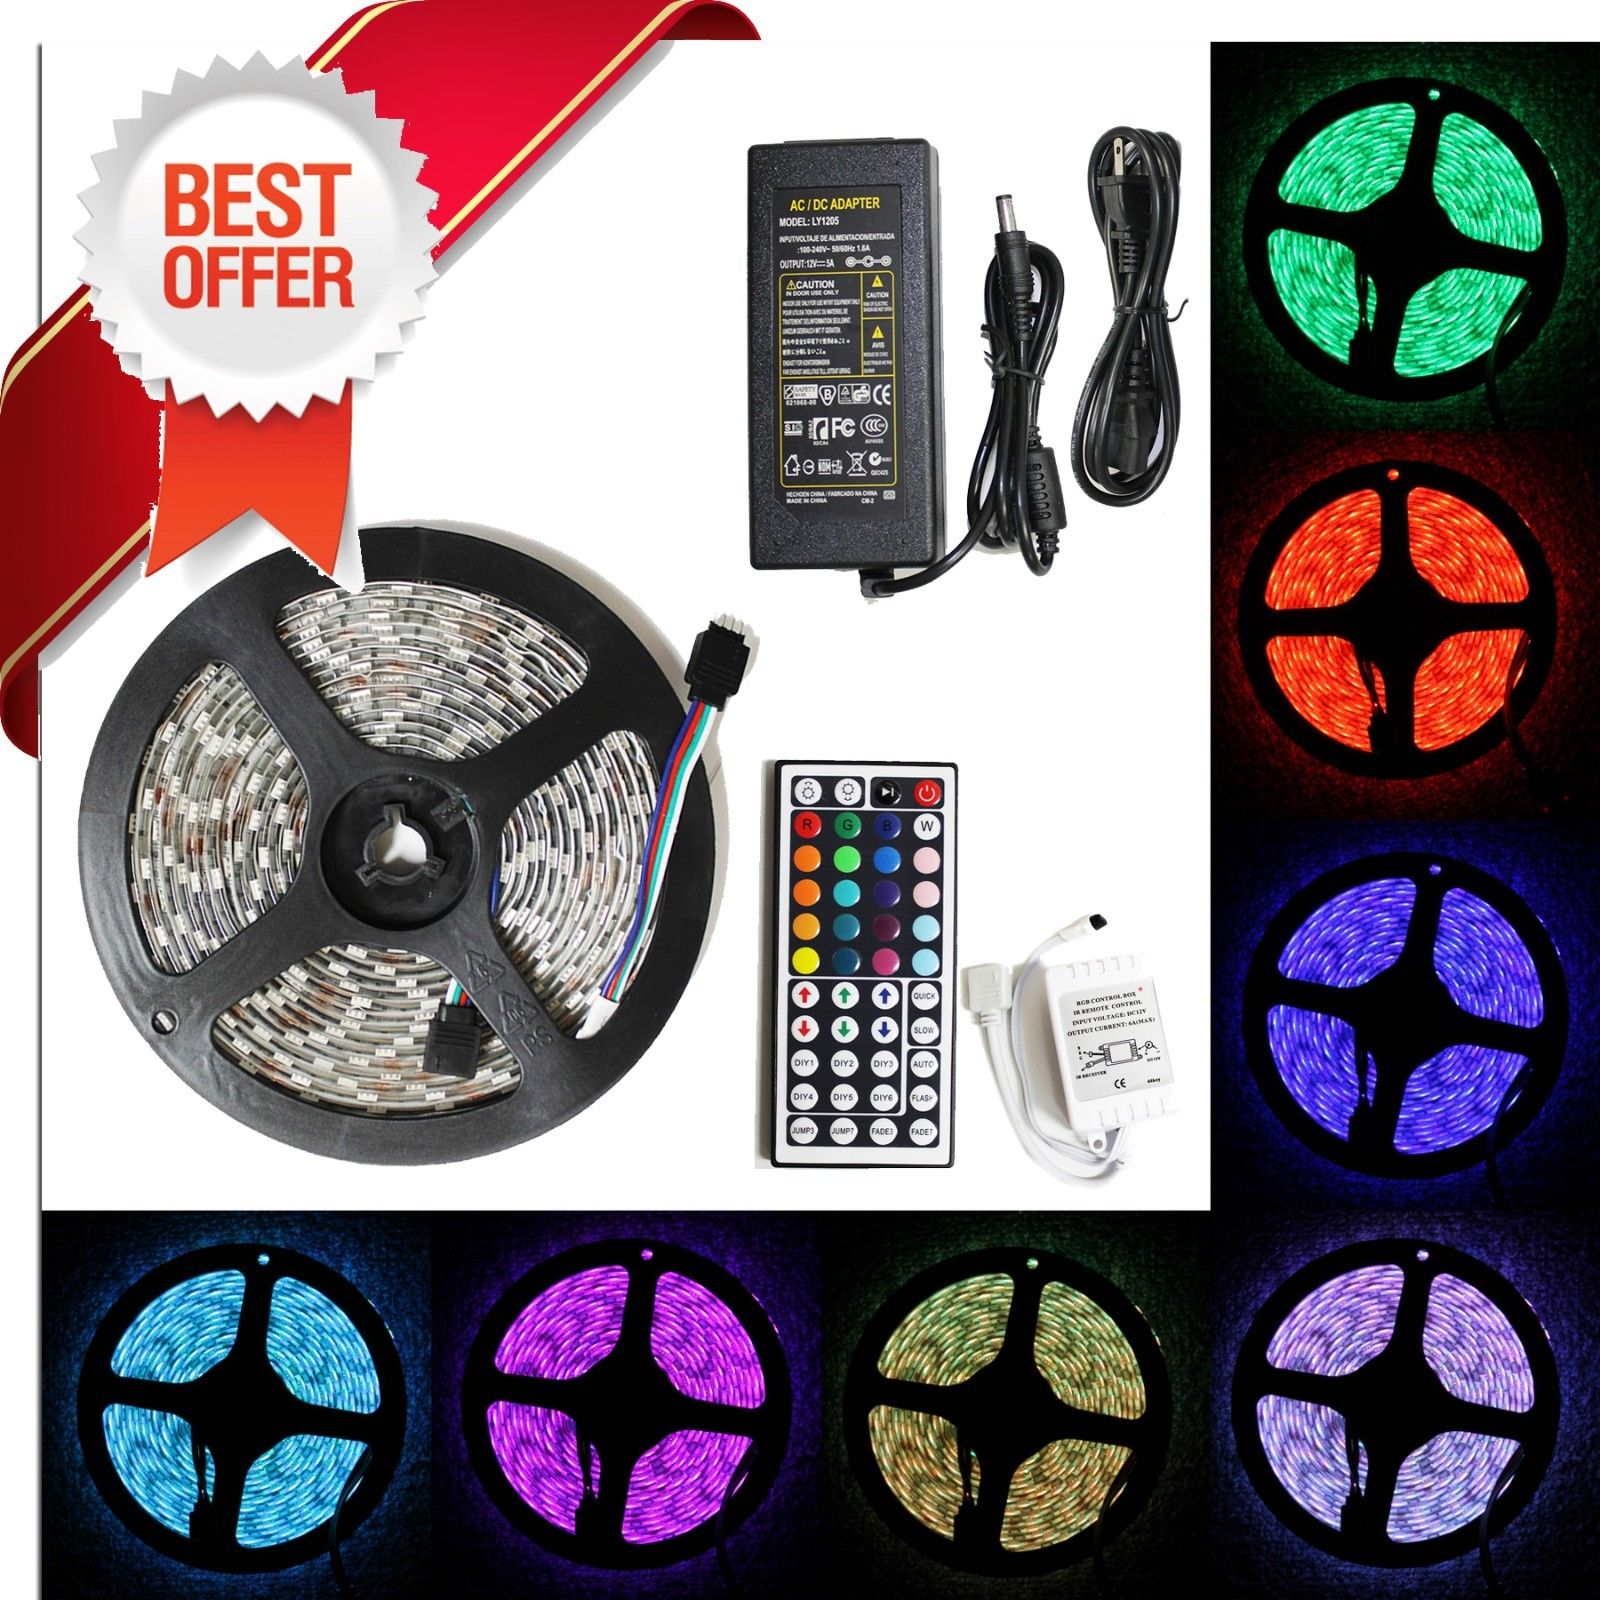 LED4Everything (TM) 5M 16.4ft 12v SMD RGB 5050 IP65 Waterproof 300 LED Flexible Tape Strip Light + 44 Key Remote Controller + 5A Power Adapter Bundle Kit